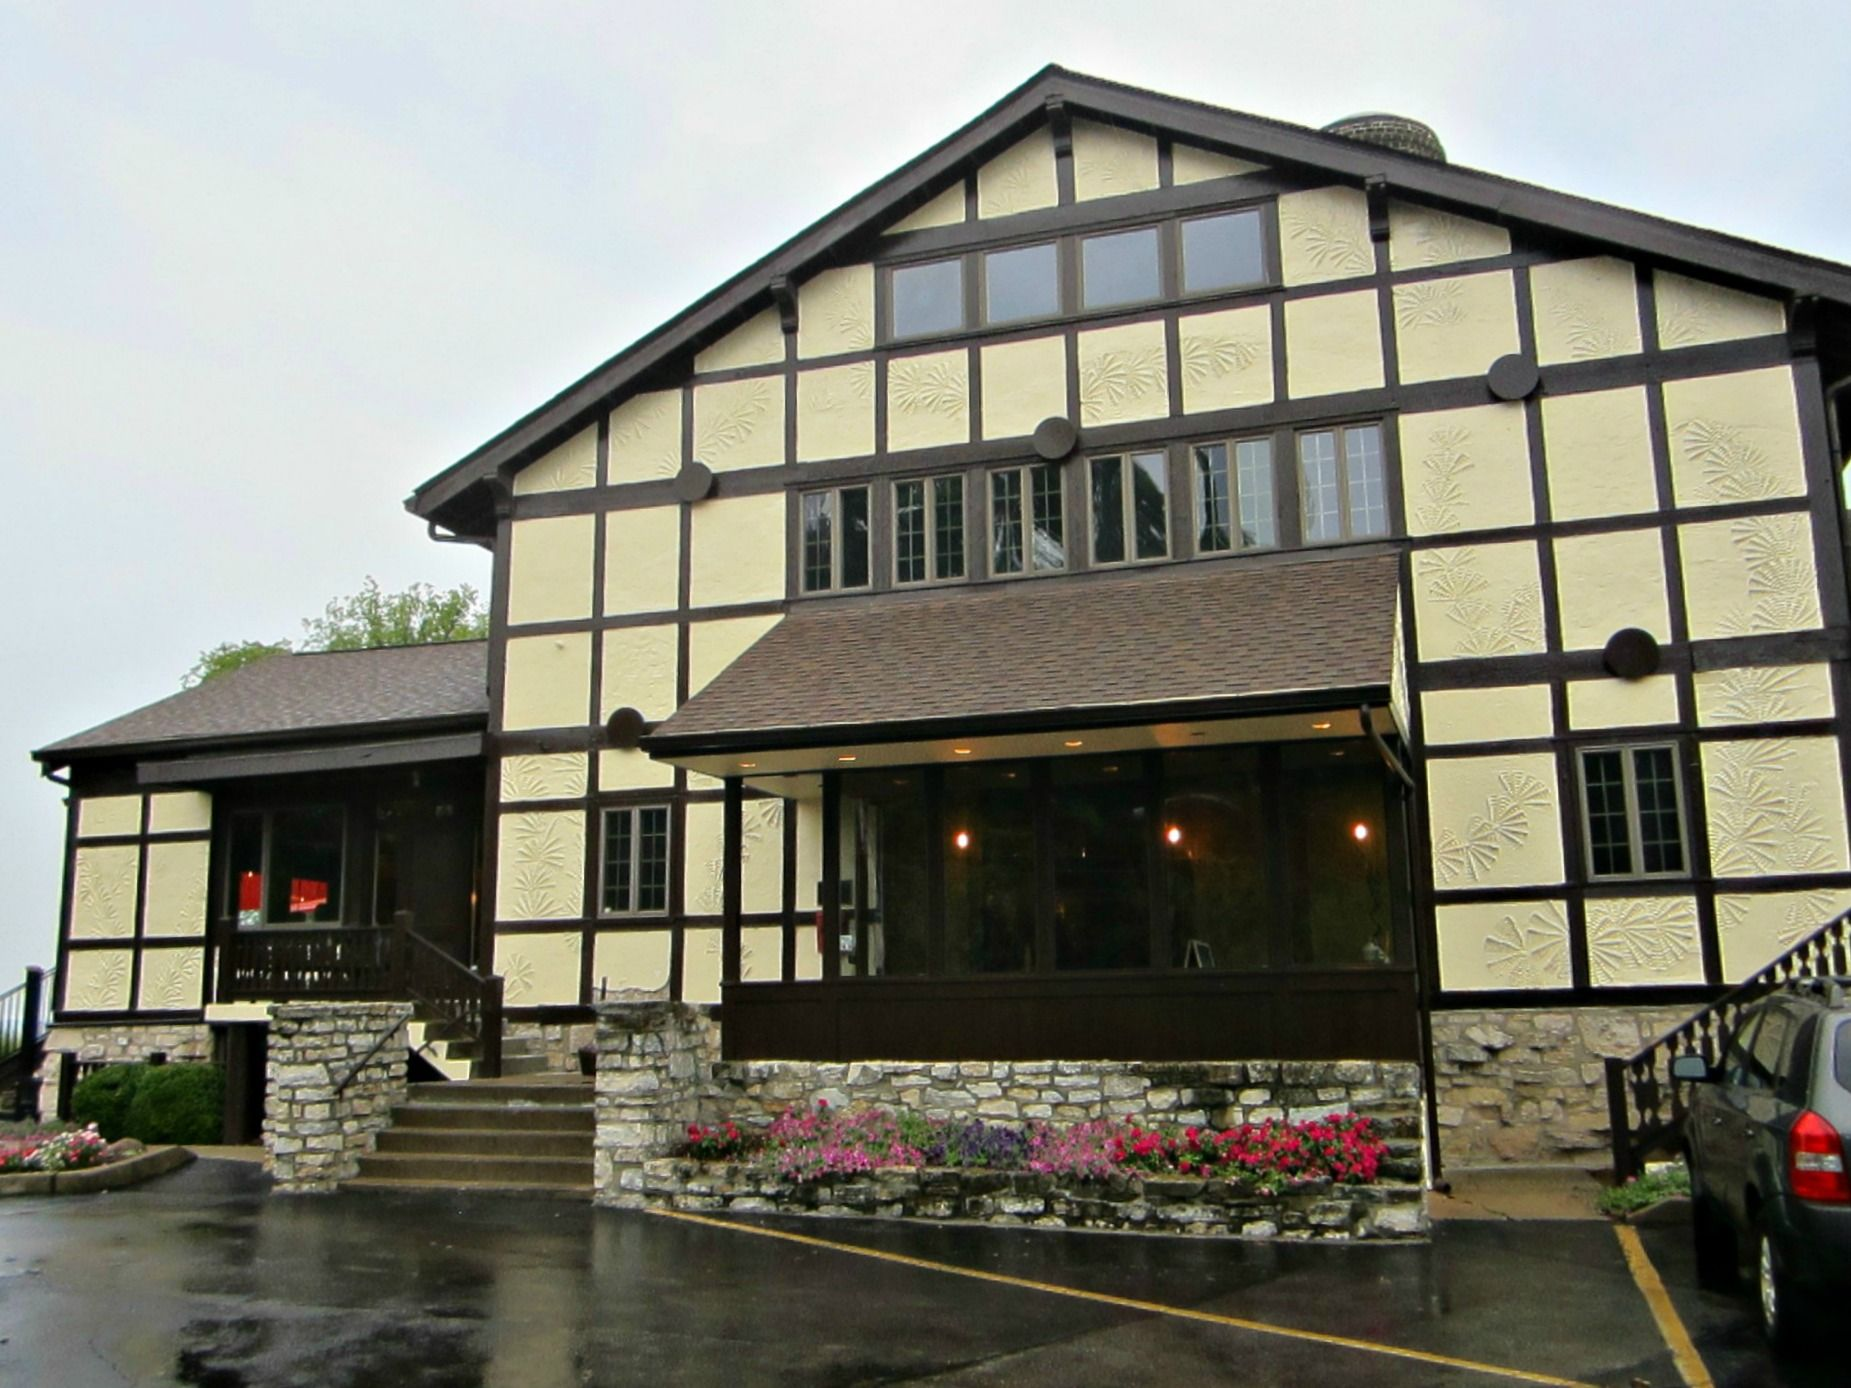 The Rookwood Bar Restaurant Is Located Inside Former Pottery Studio In Mt Adams Neighborhood Of Cincinnati